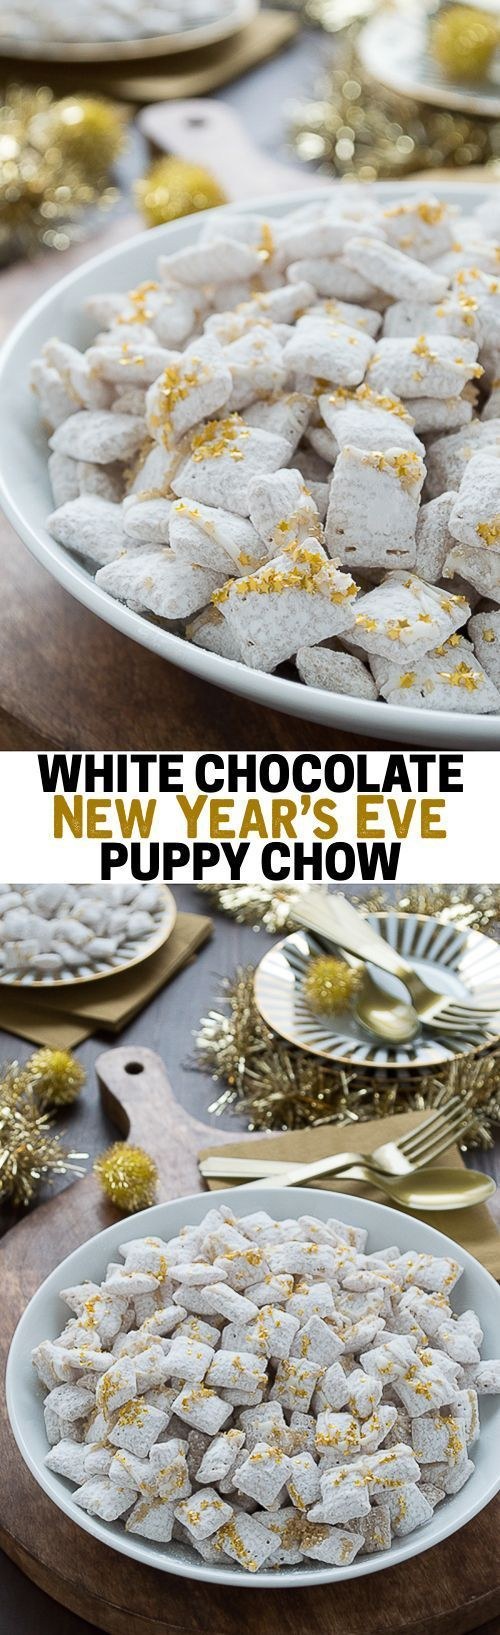 Easy white chocolate puppy chow with gold sprinkles and edible gold stars! This is perfect to make for New Year's Eve!